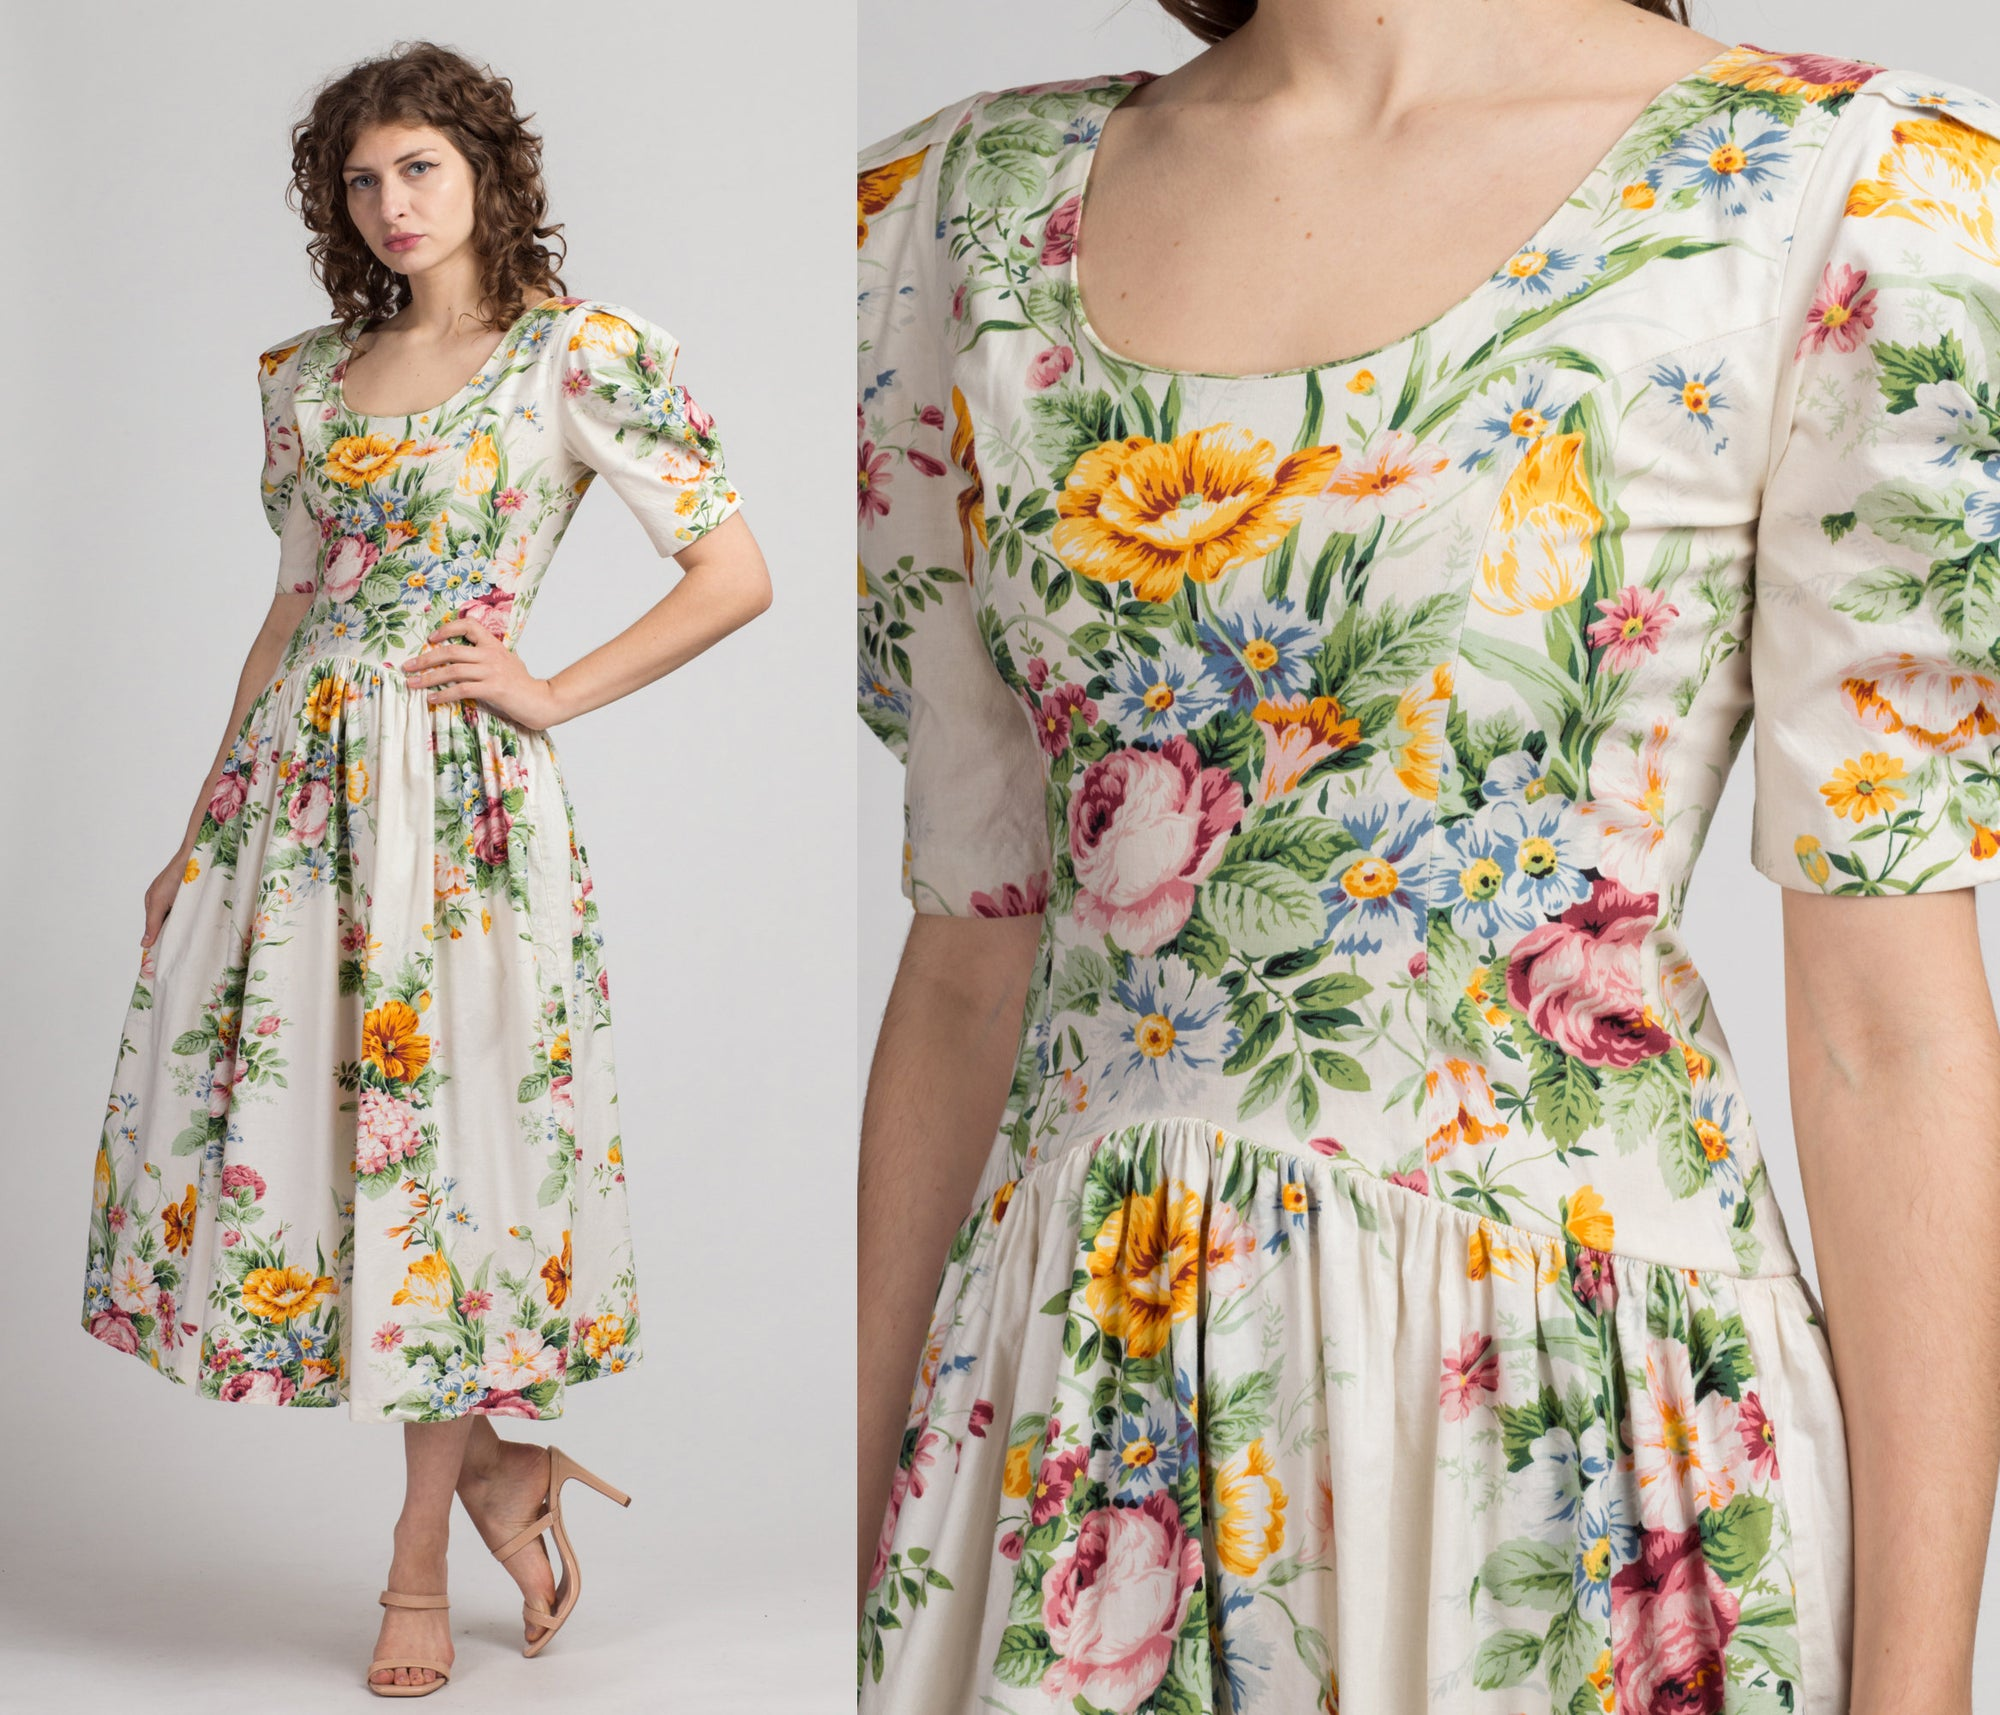 80s Ivory Rose Puff Sleeve Dress - Medium | Vintage Boho Floral Drop Waist Maxi Dress